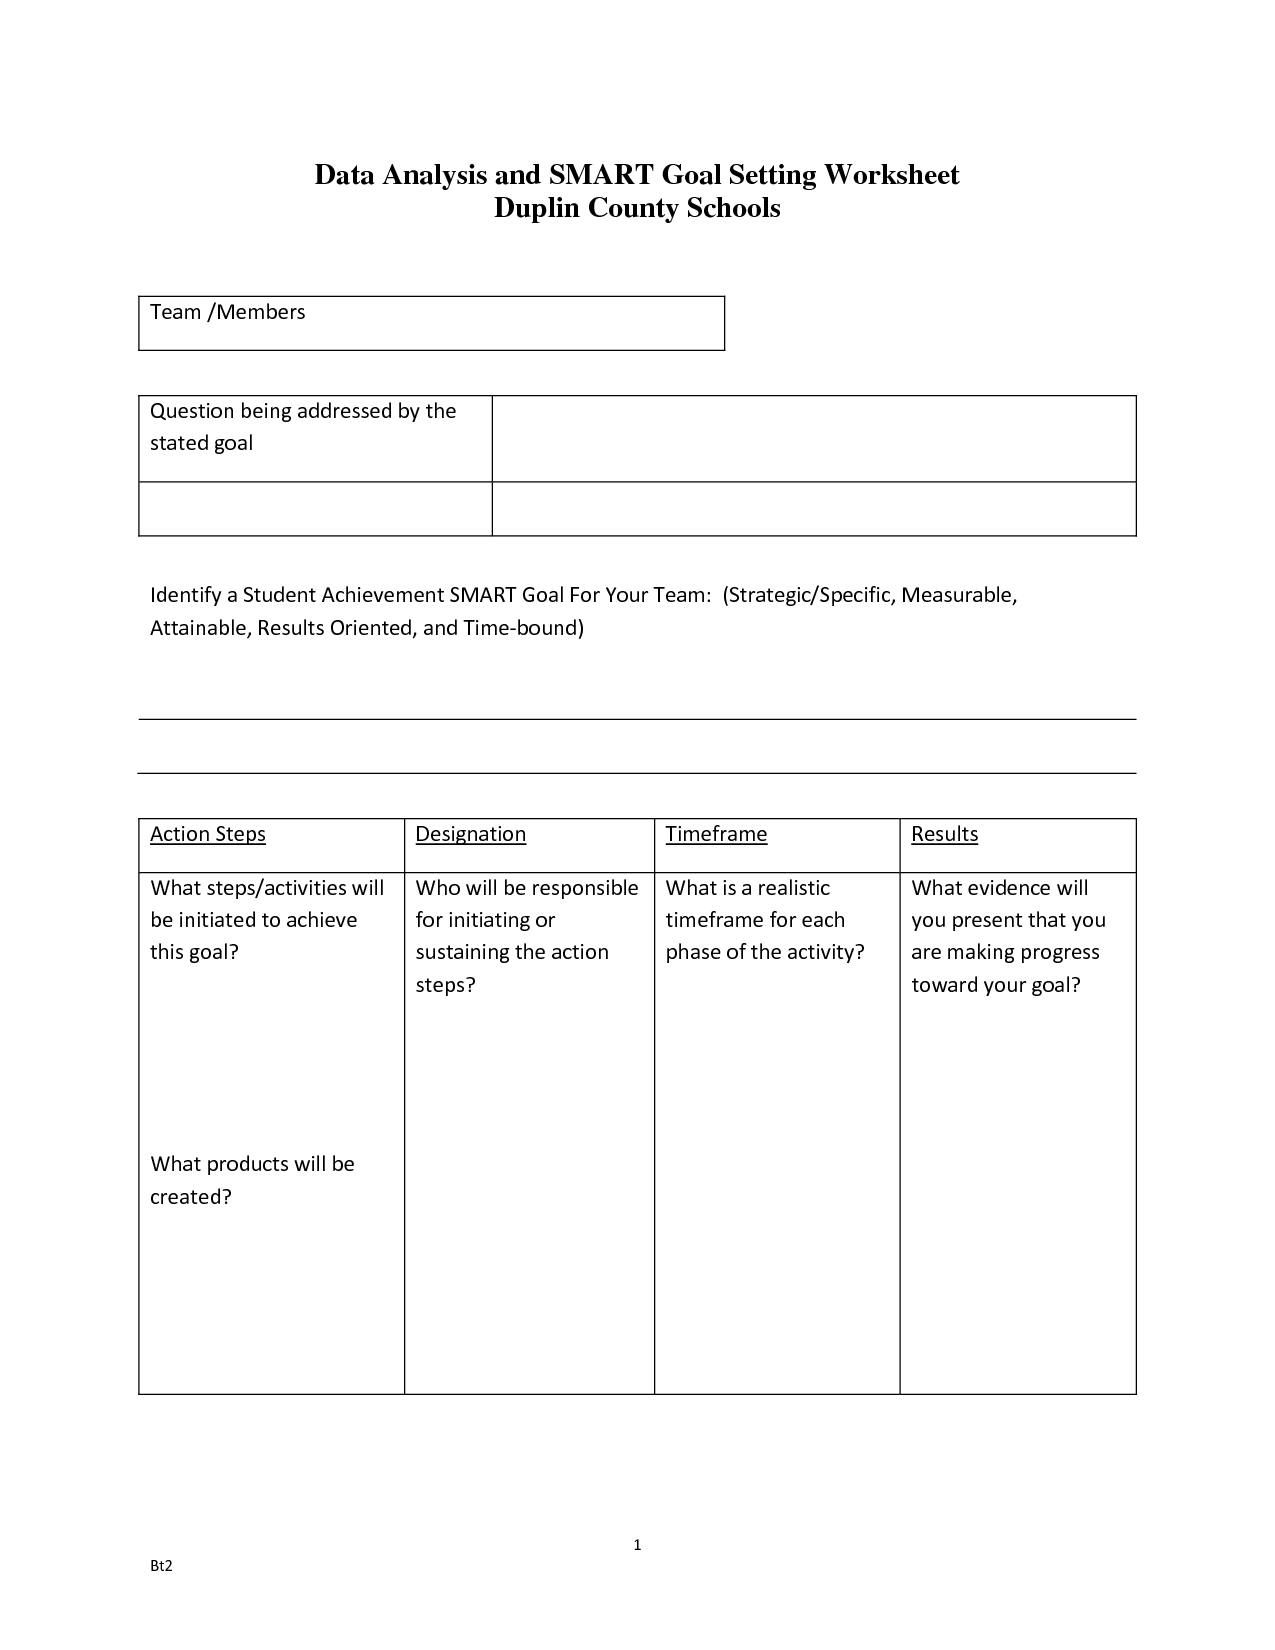 Plc Teams Dataysis And Smart Goal Worksheet